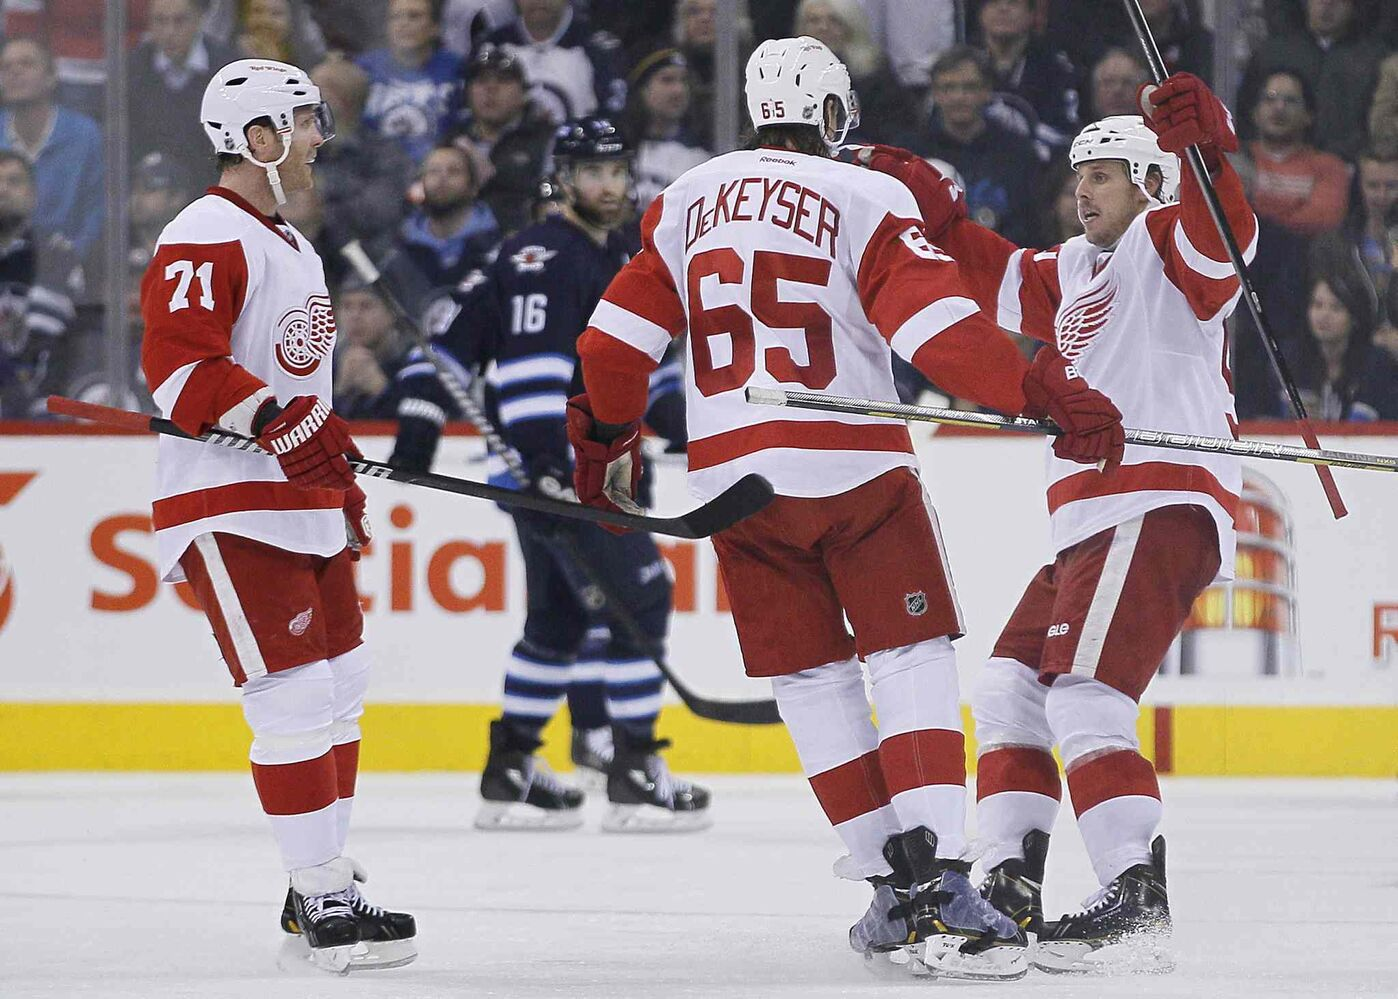 Detroit Red Wings forwards Daniel Cleary (71), Danny DeKeyser (65) and Stephen Weiss celebrate DeKeyser's second-period goal. (JOHN WOODS / THE CANADIAN PRESS)